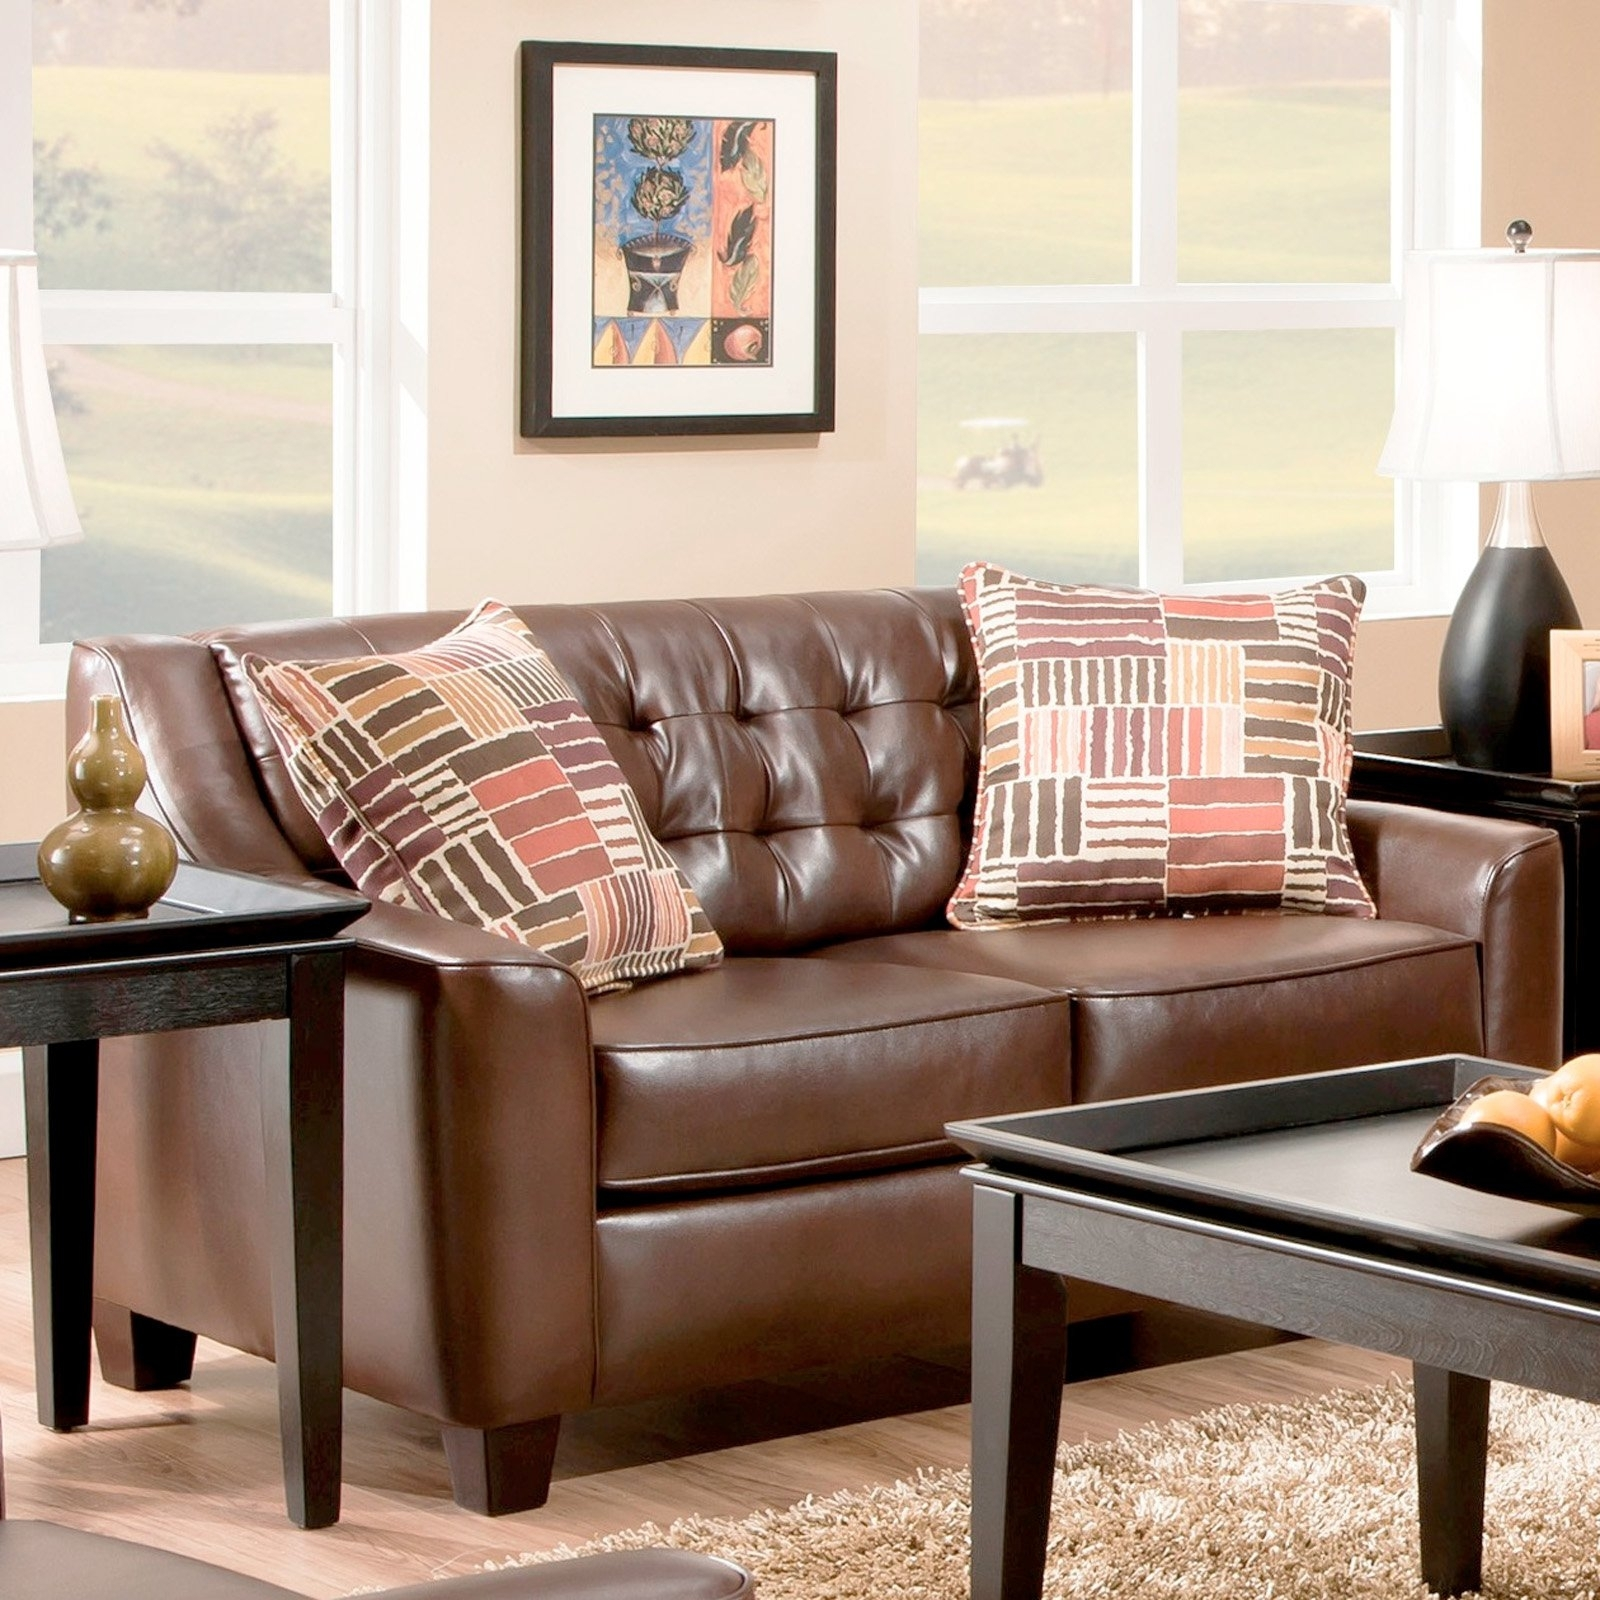 Chelsea Home Furniture Josephine Loveseat - Walmart throughout Josephine 2 Piece Sectionals With Raf Sofa (Image 5 of 30)